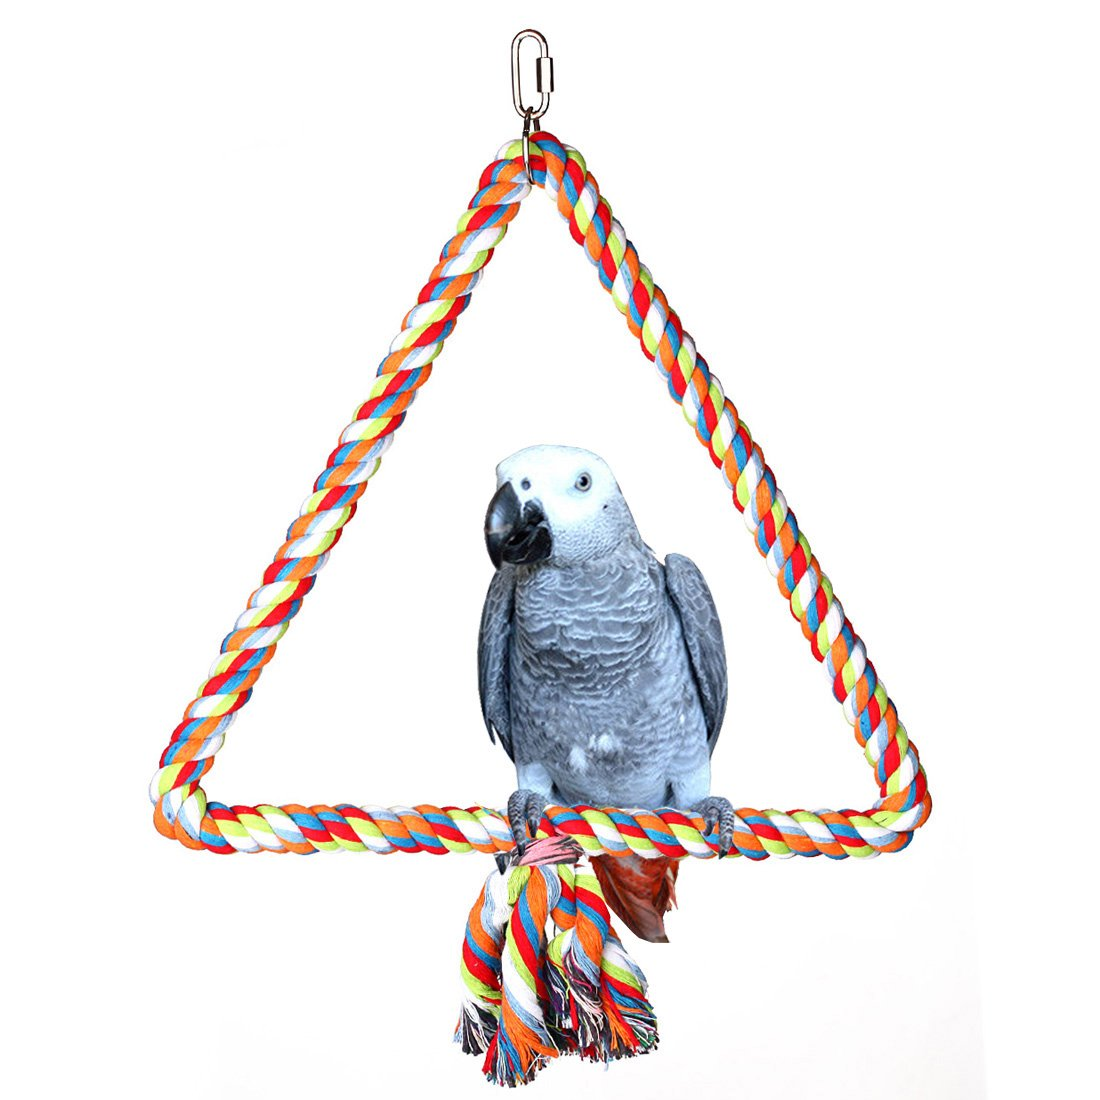 KINTOR Medium Triangle Rope Swing Bird TOY Parrot Cage Toys Cages Conure African Grey by KINTOR (Image #1)